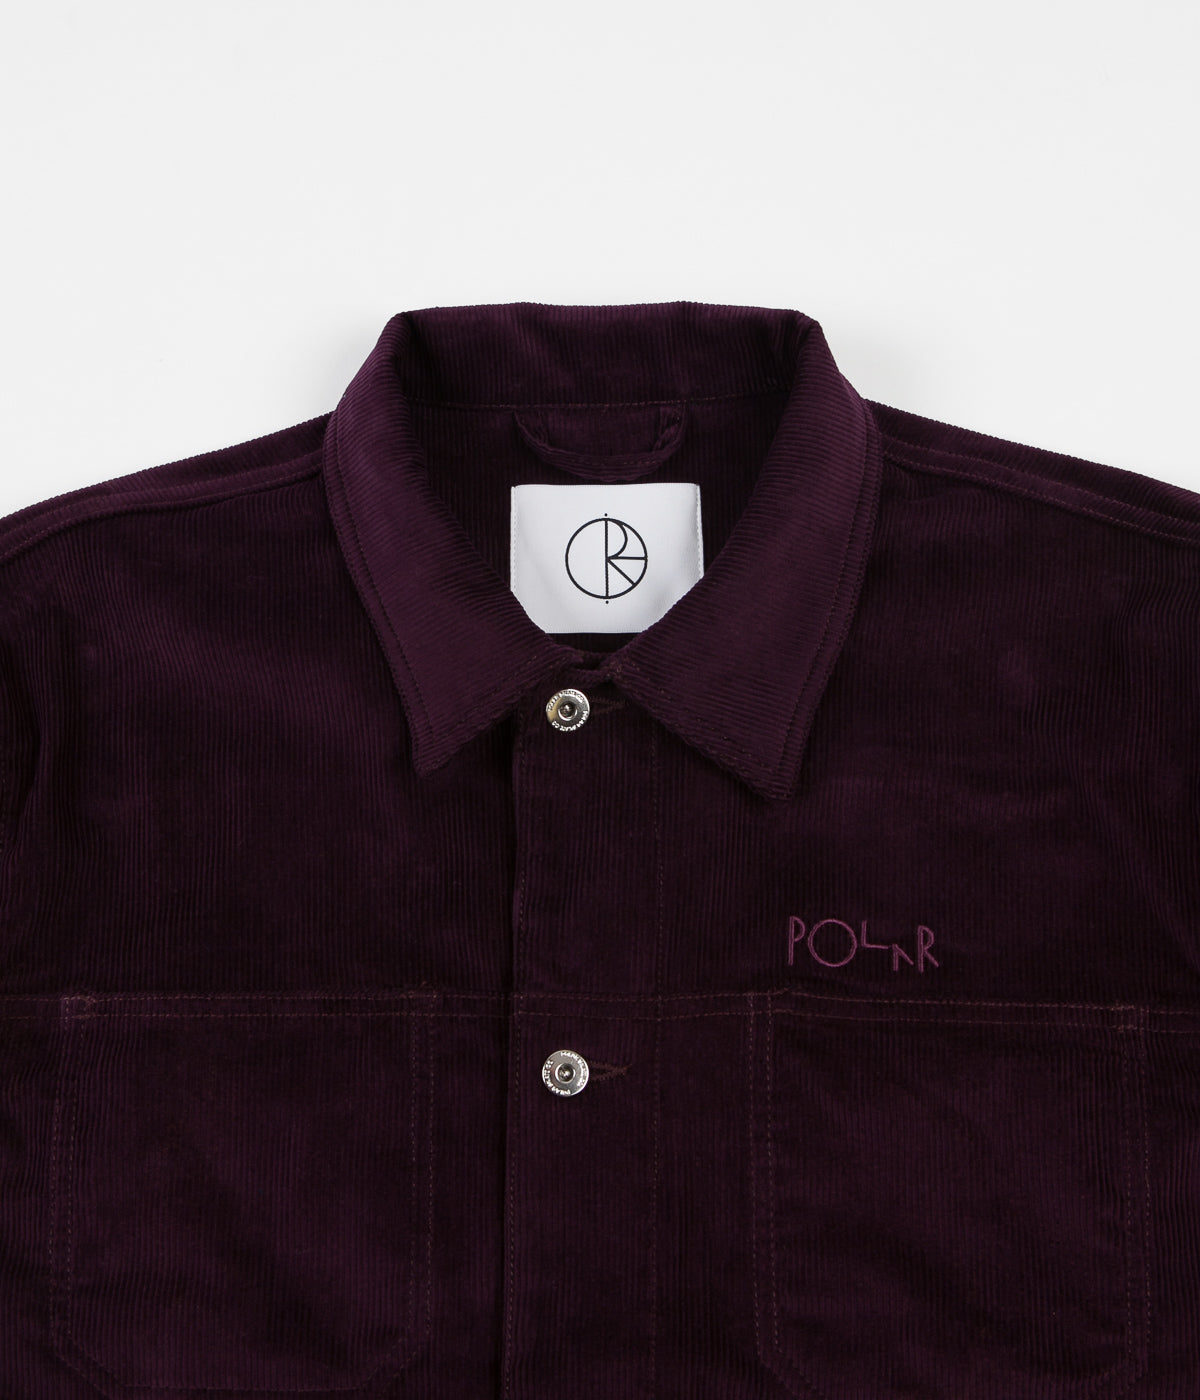 Polar Cord Jacket - Prune